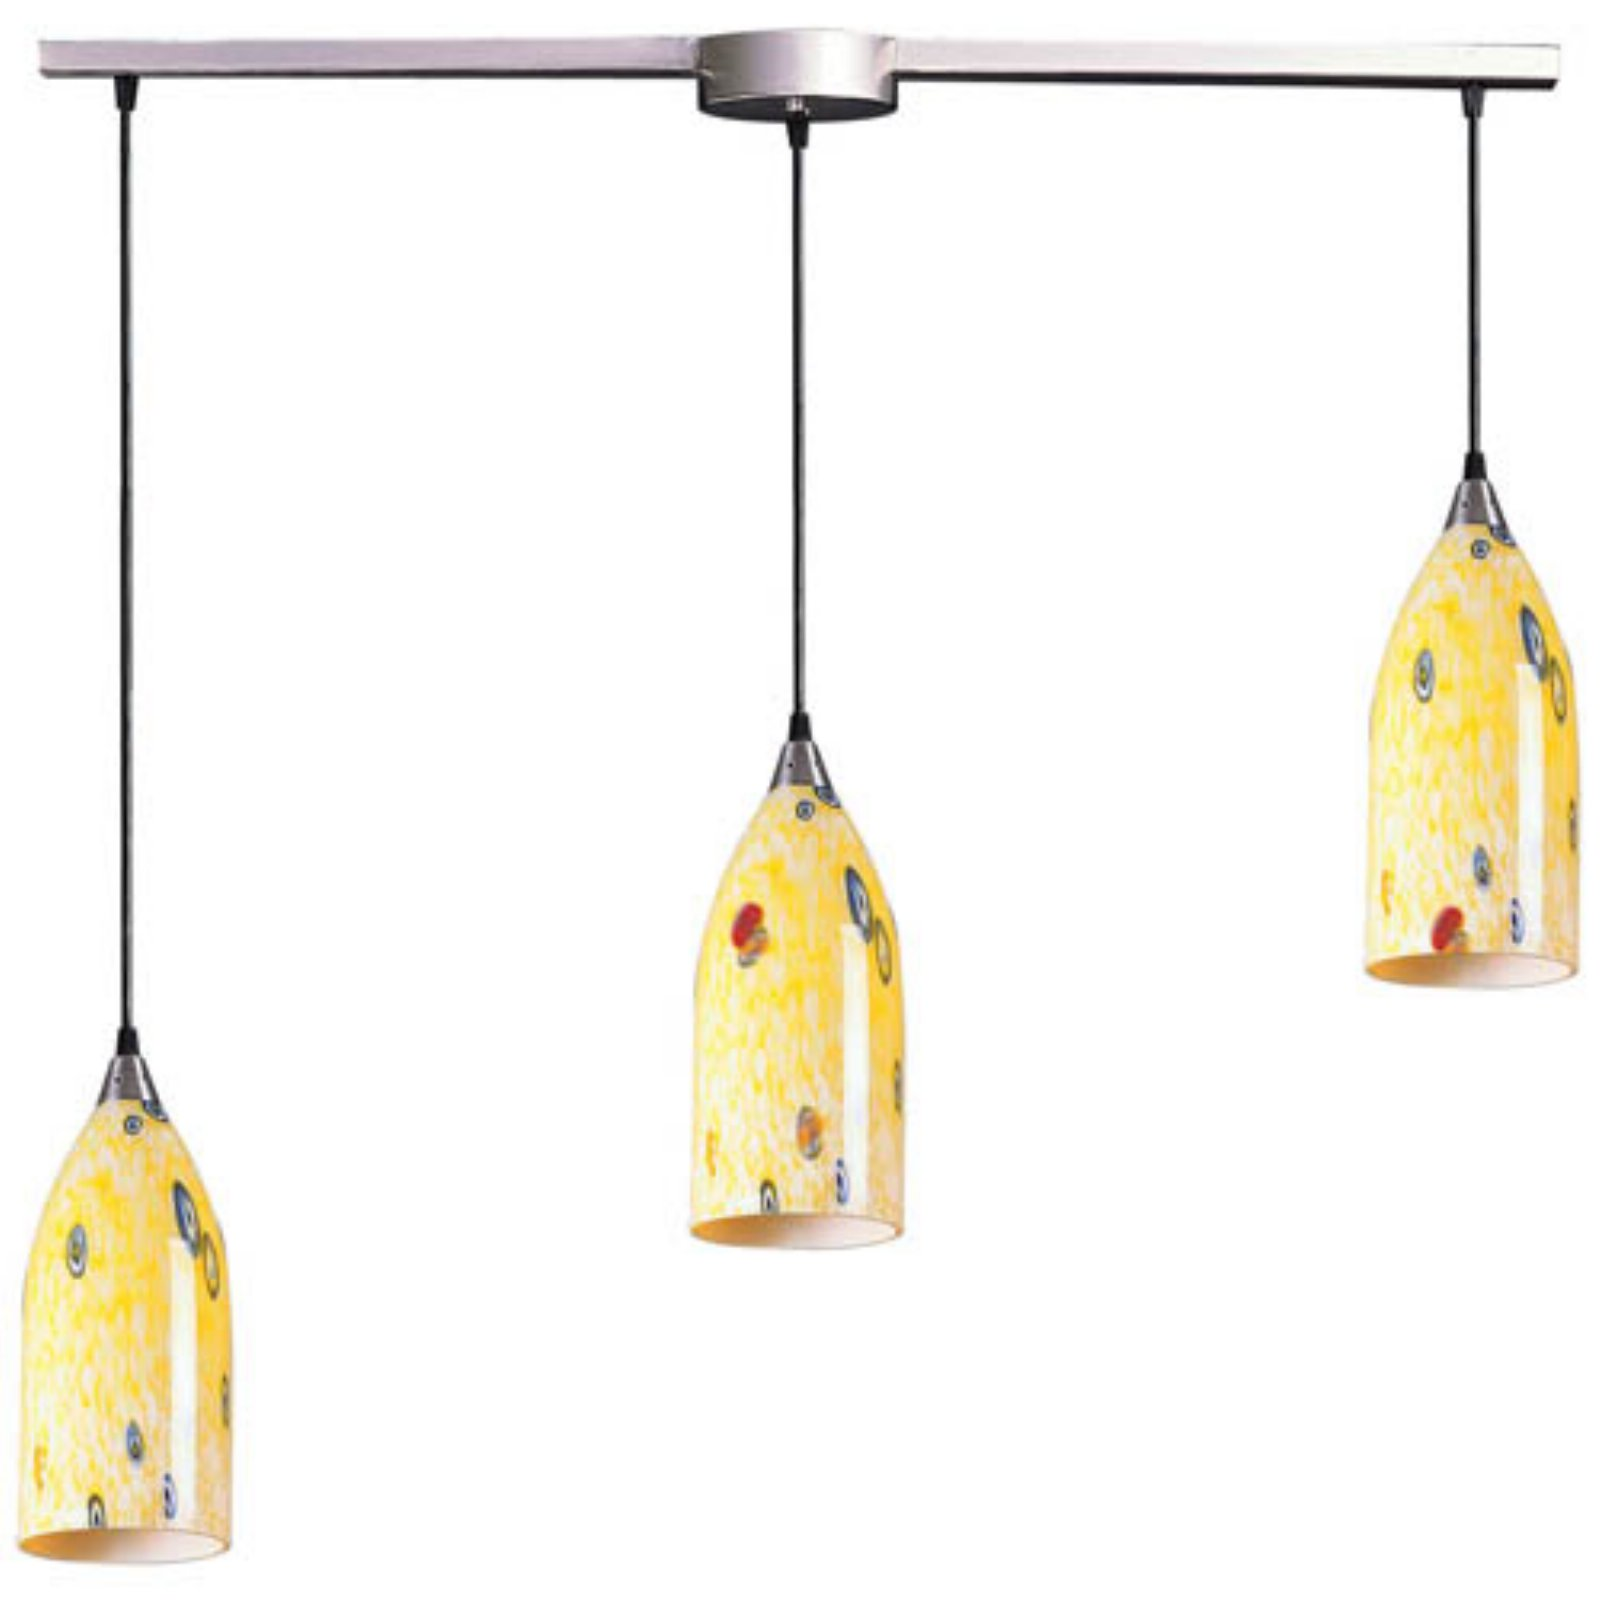 Verona Pool Table Light-3 Shades